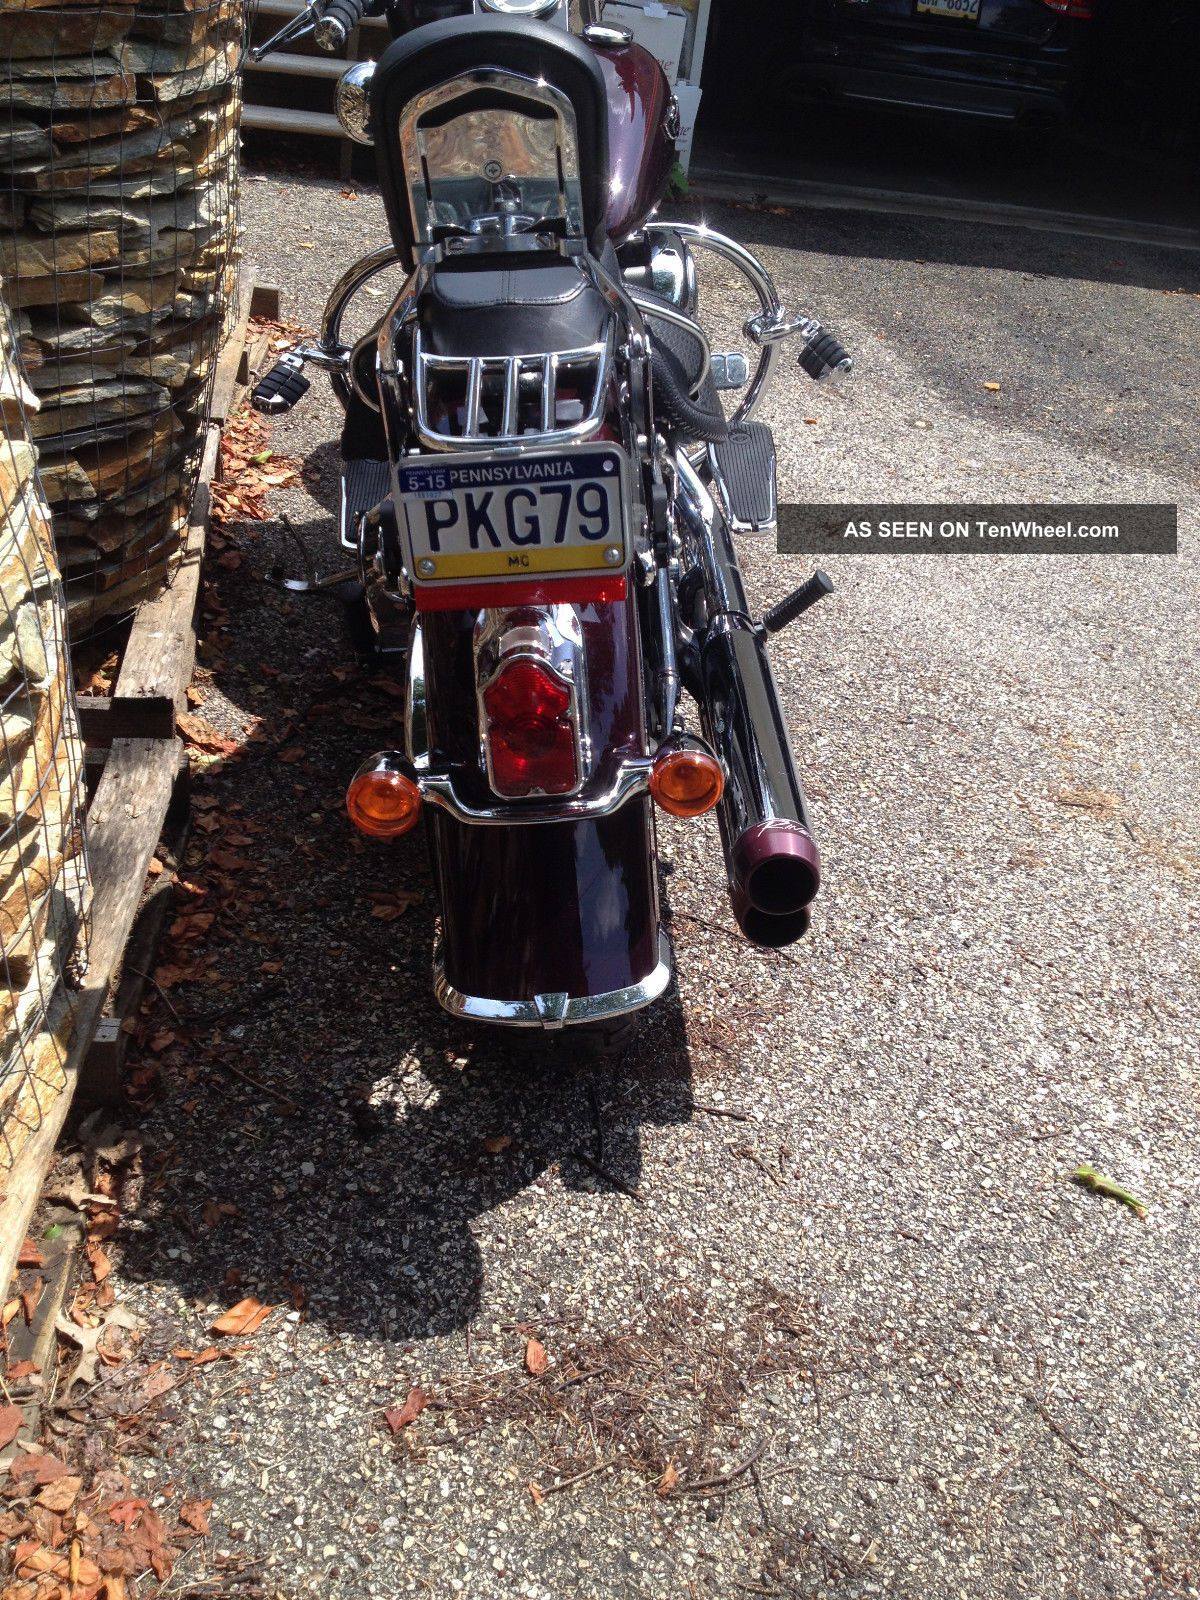 2014 Street Glide Deluxe Html Autos Post